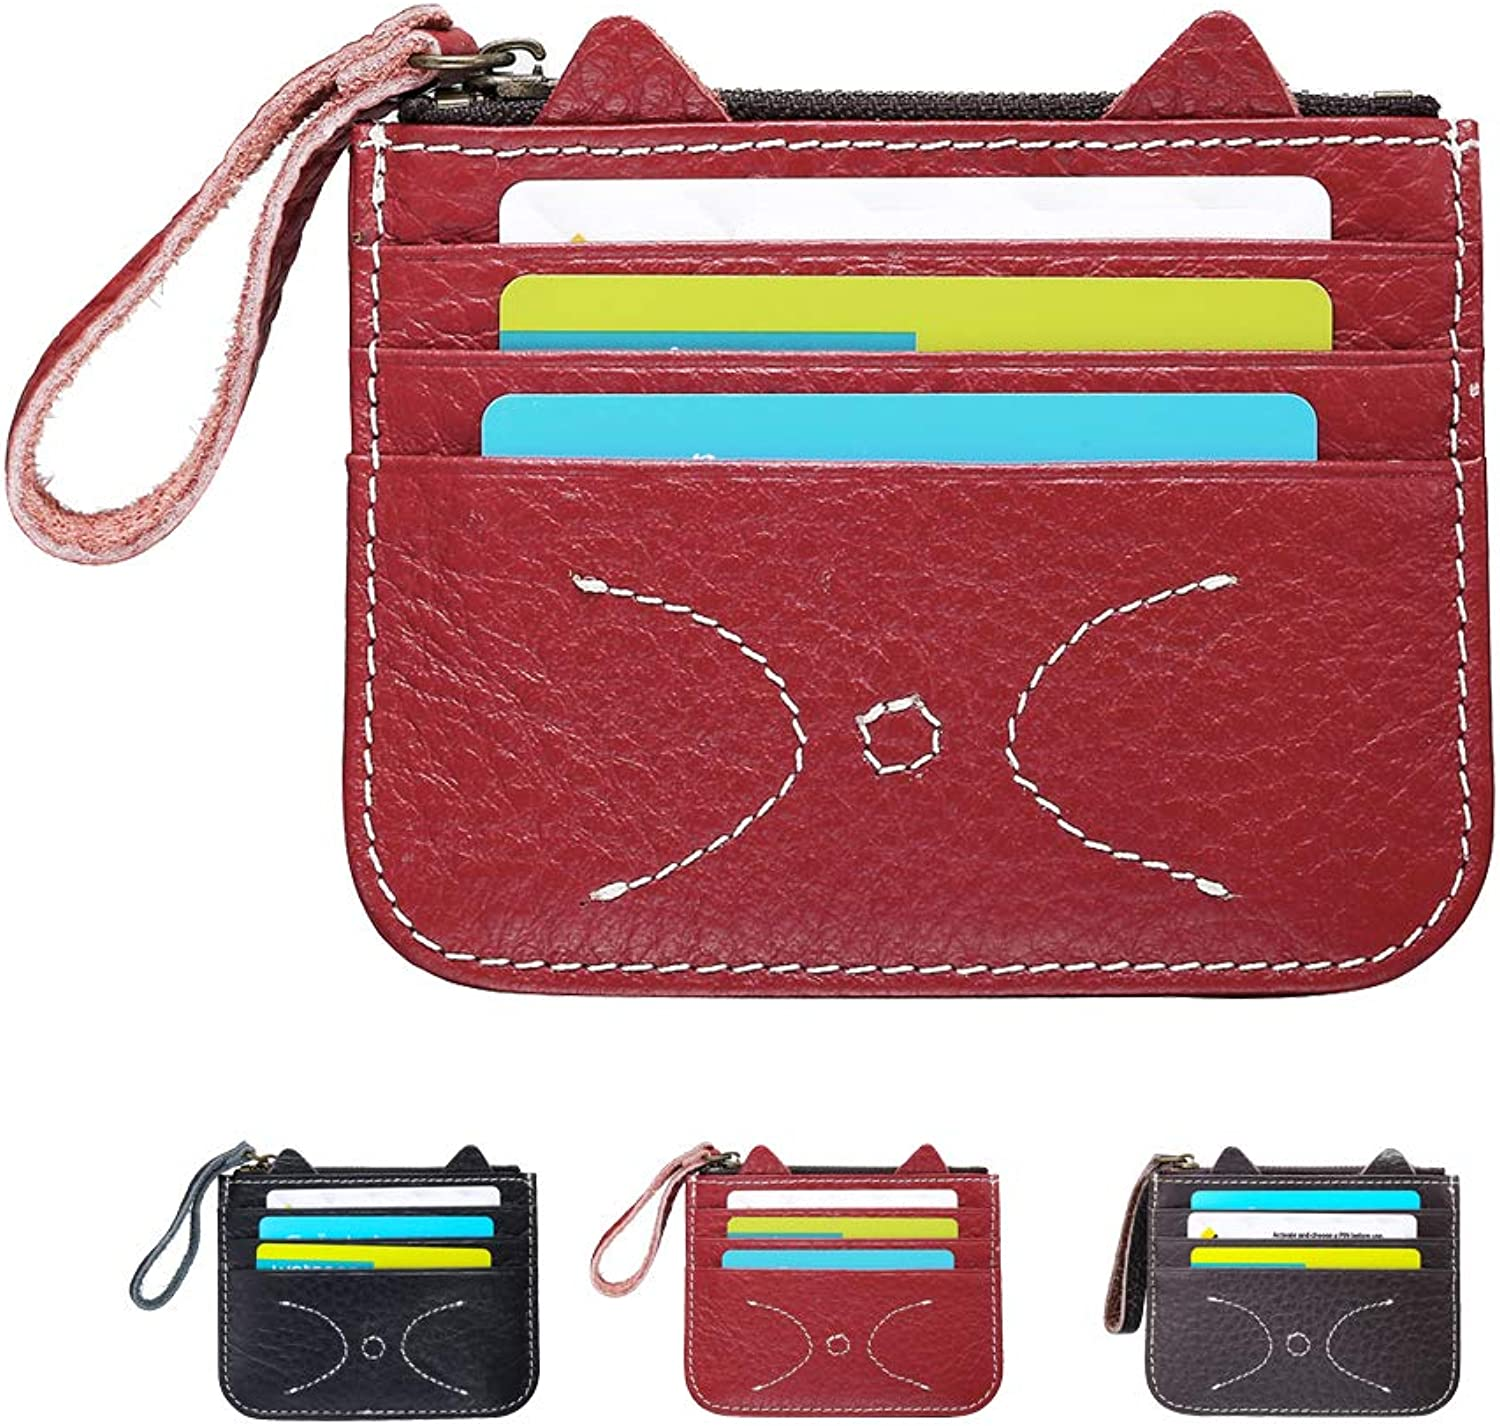 Womens Cat Wallet Cute Leather Accordion Card Wallet RFID Credit Card Holder for Girls